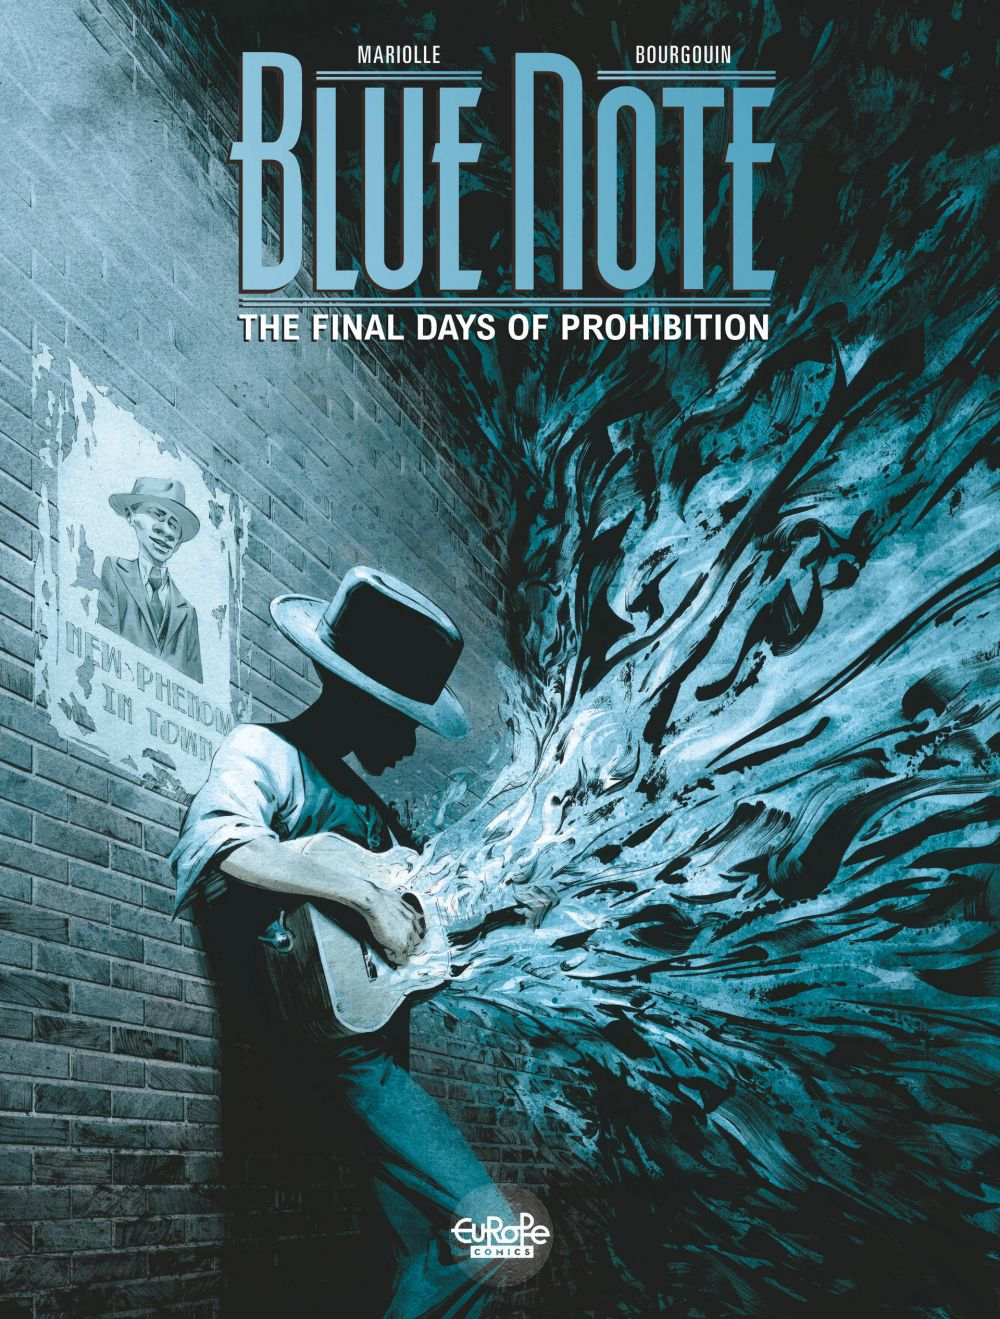 Blue note - Volume 2 - The Final Days of Prohibition